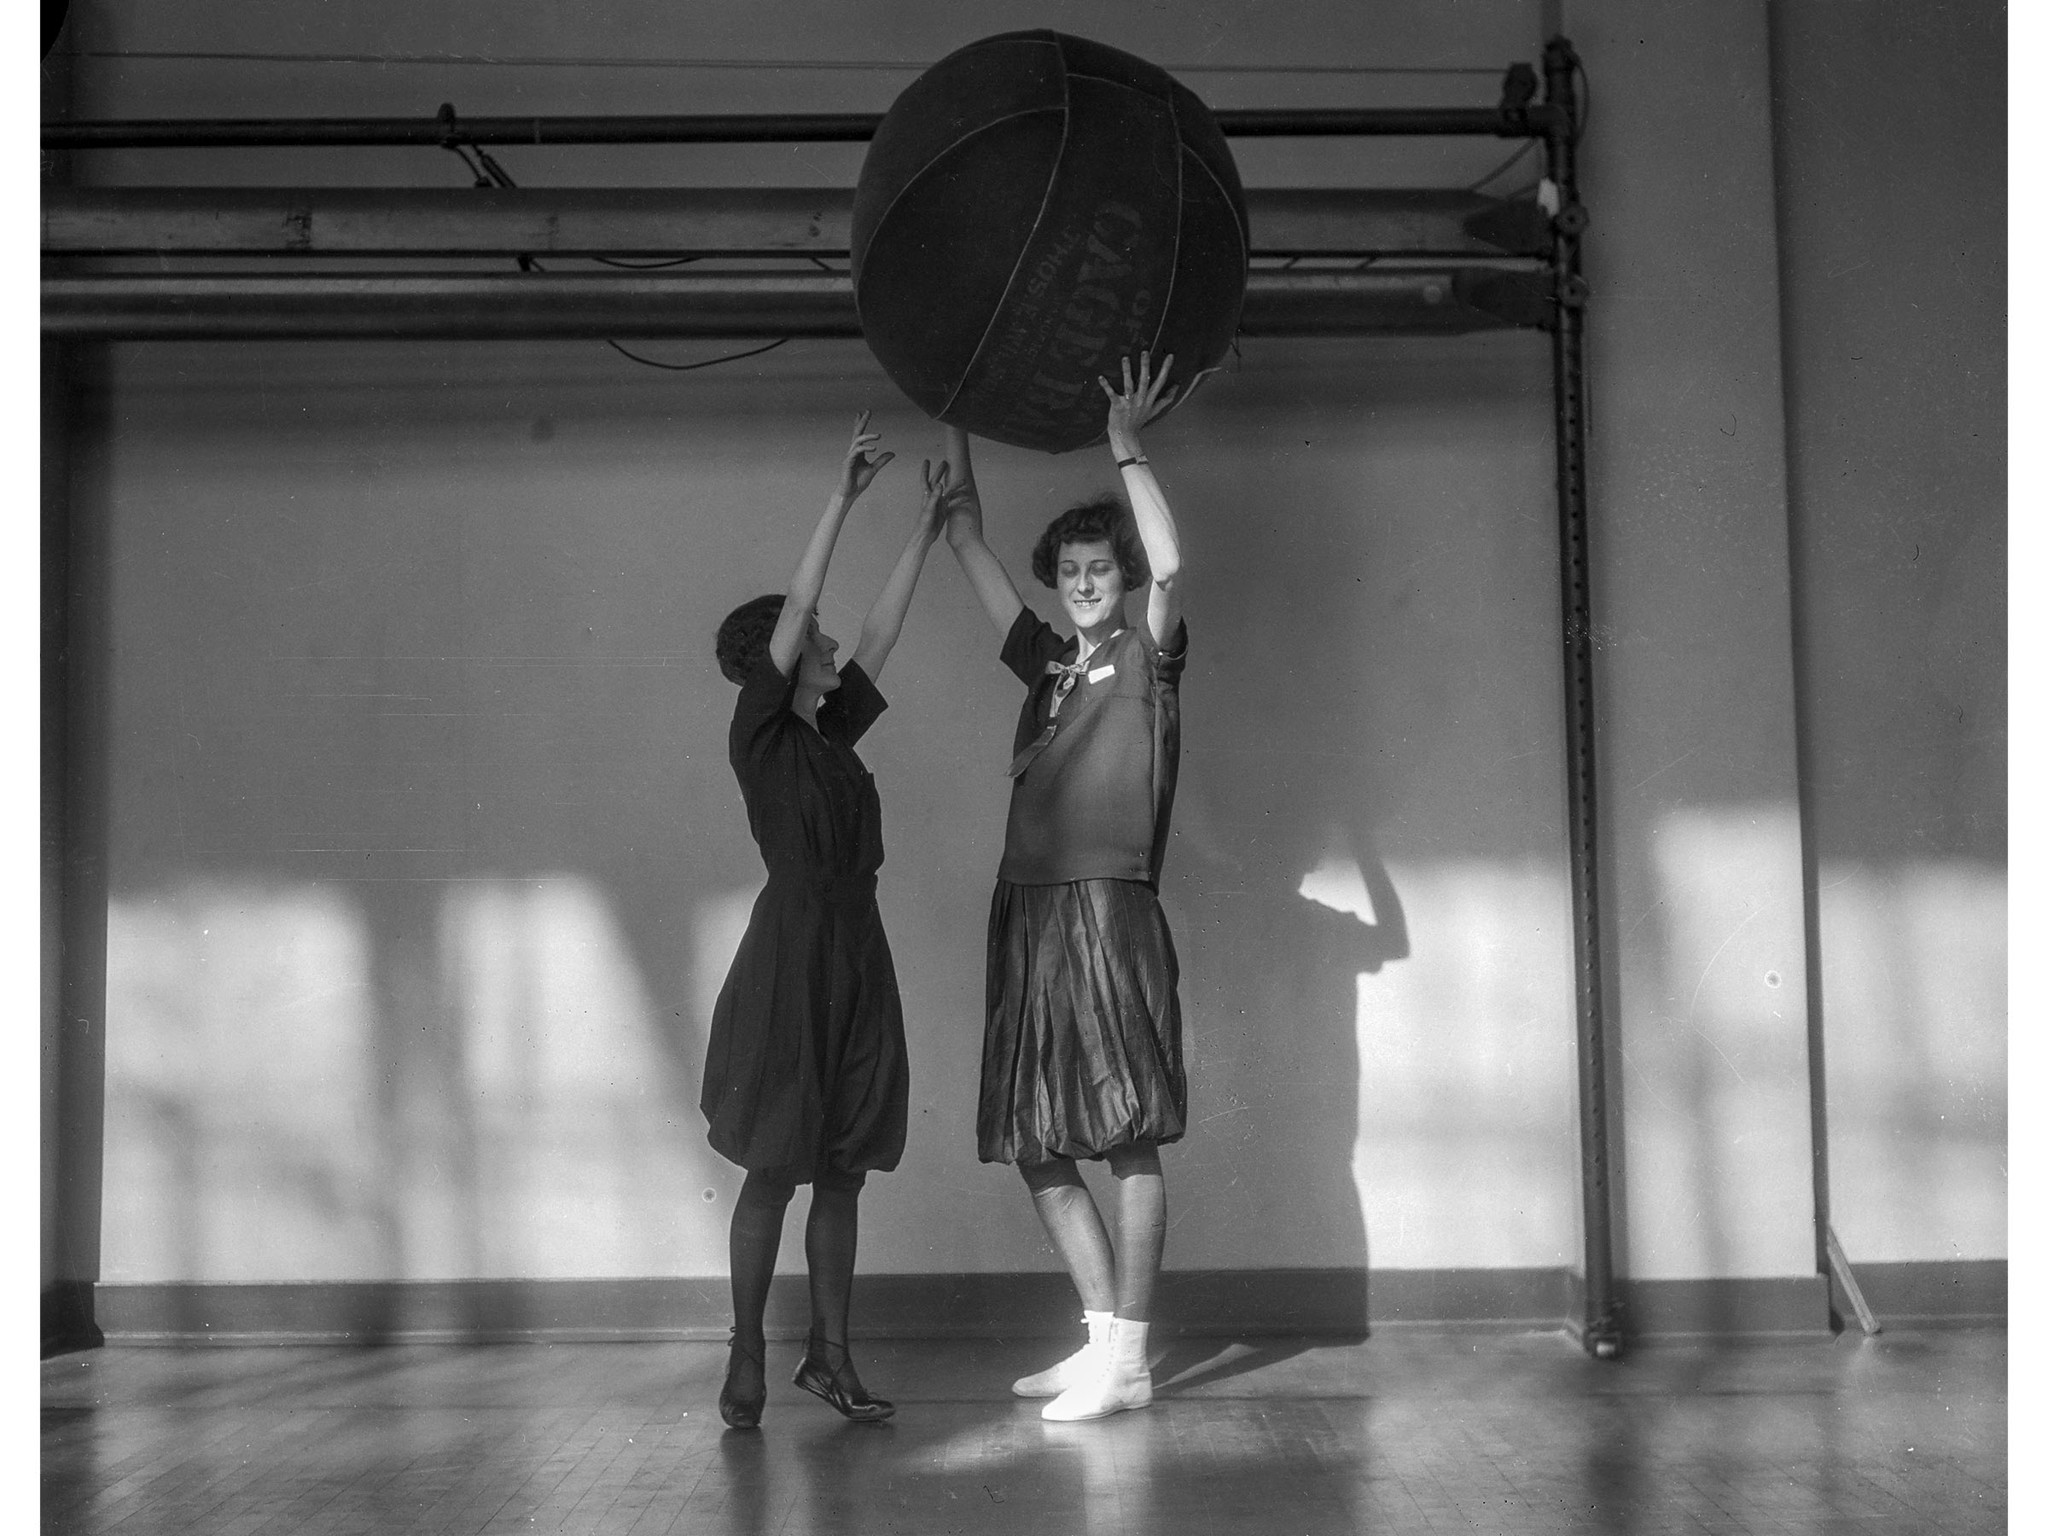 Feb. 16, 1926: Selma Posner and Lillian Cassel play cage ball at the Y.W.C.A., Los Angeles, 1926 Sel